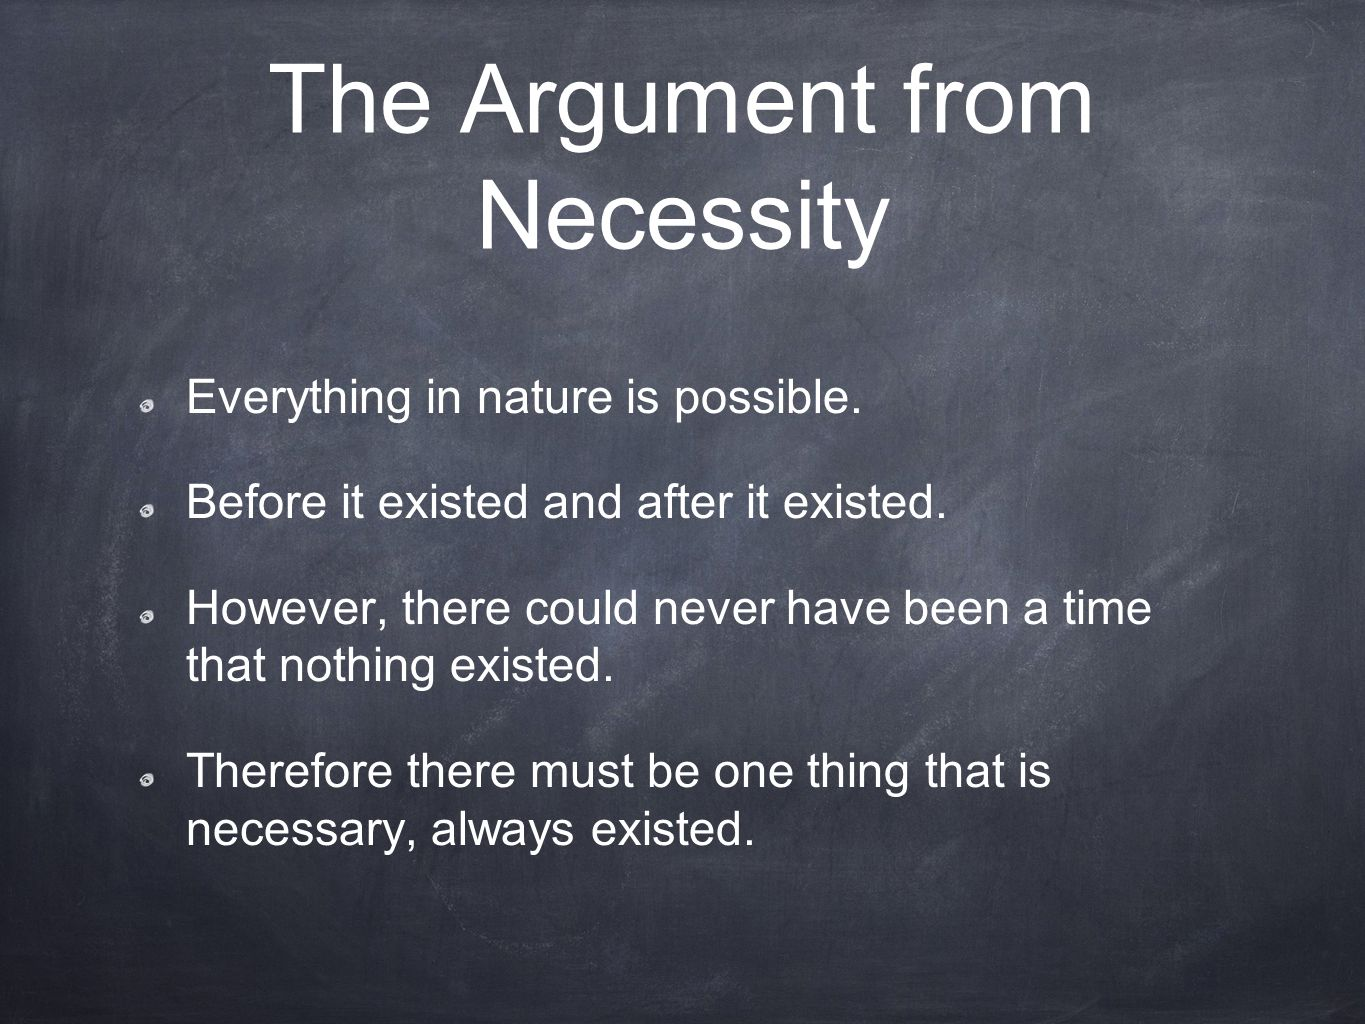 The Argument from Necessity